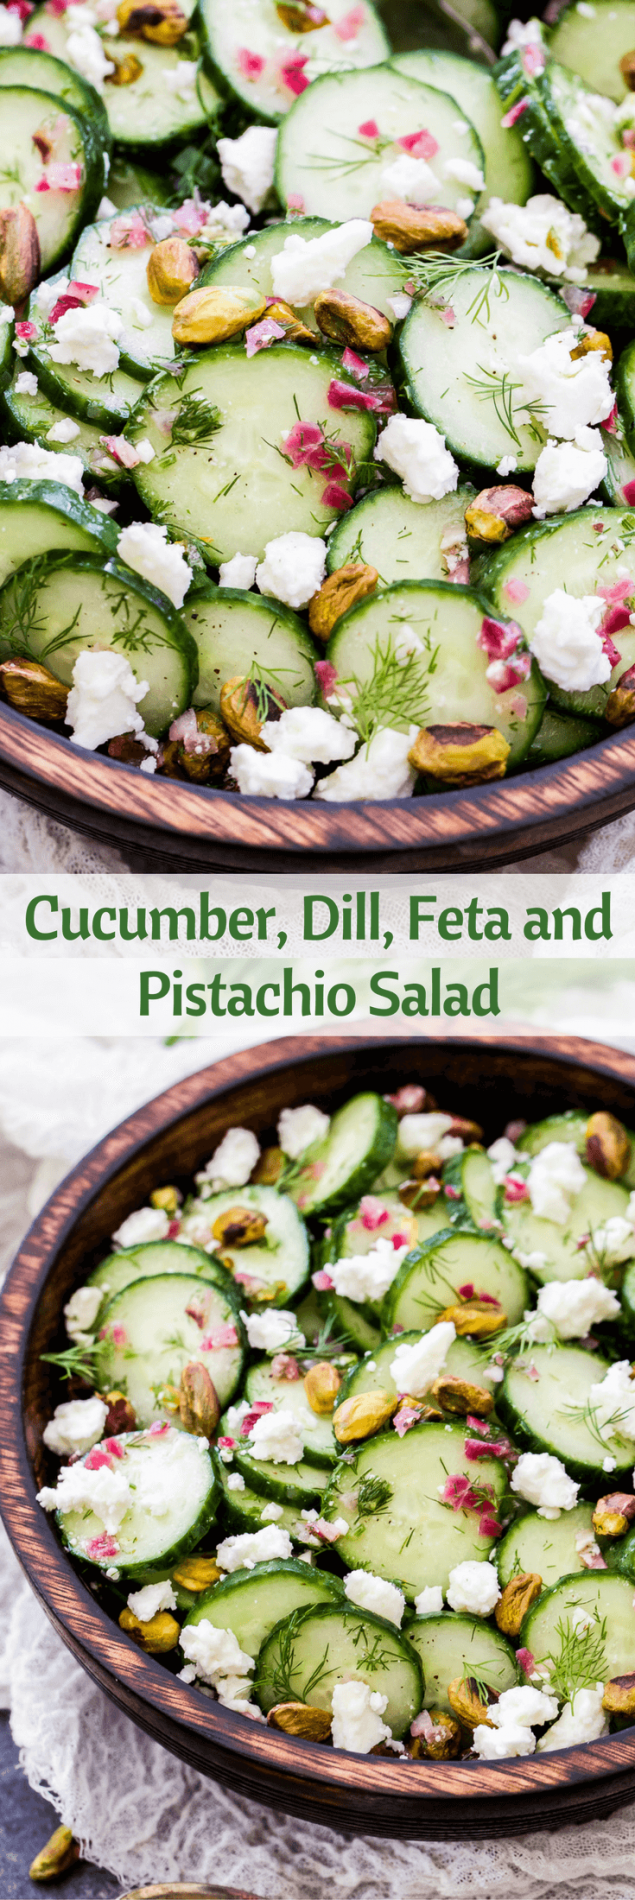 Say hello to your new favorite, refreshing salad - Cucumber, Dill, Feta and Pistachio Salad! Crisp cucumbers, fresh dill, salty feta and crunch pistachios are the perfect combination of flavors. You'll be making this all summer long!